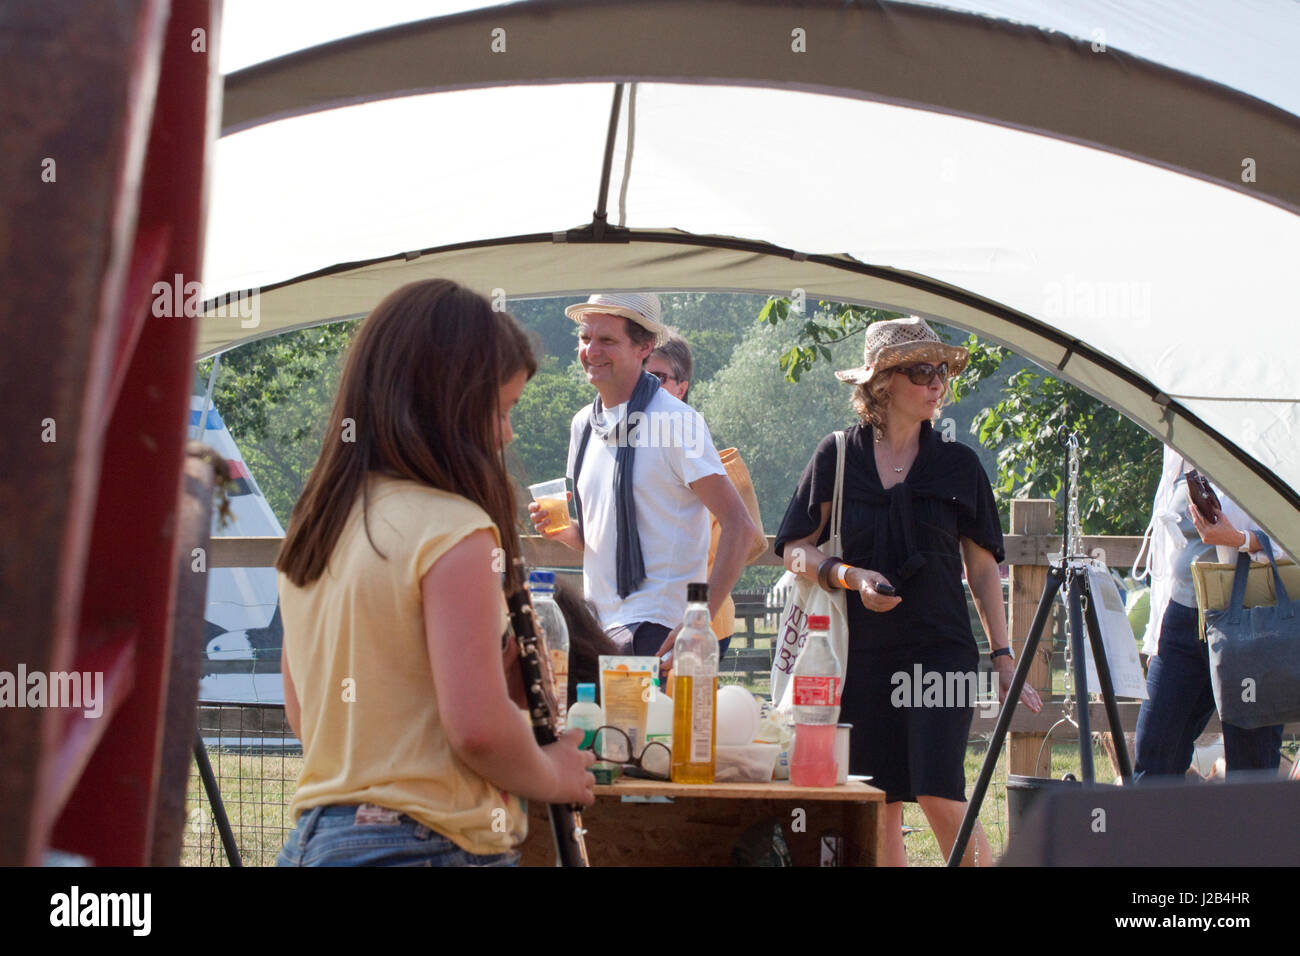 At the Maverick music festival people pass by an open tent - Stock Image